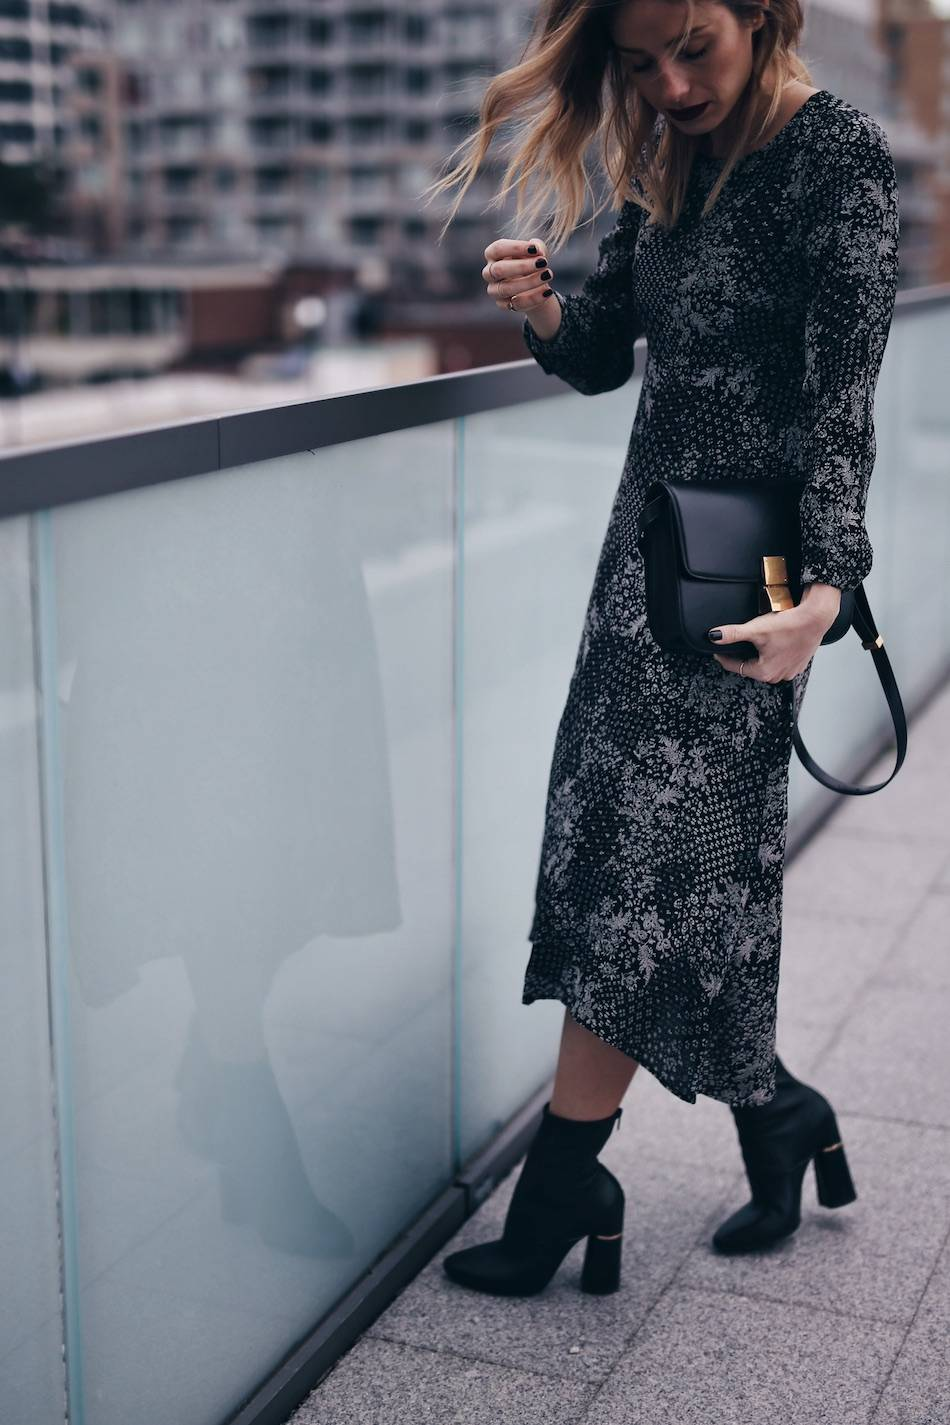 style-blogger-jill-lansky-of-the-august-diaries-showing-easy-holiday-outfits-in-old-navy-print-dress-celine-box-bag-and-3-1-phillip-lim-kyoto-boots-2